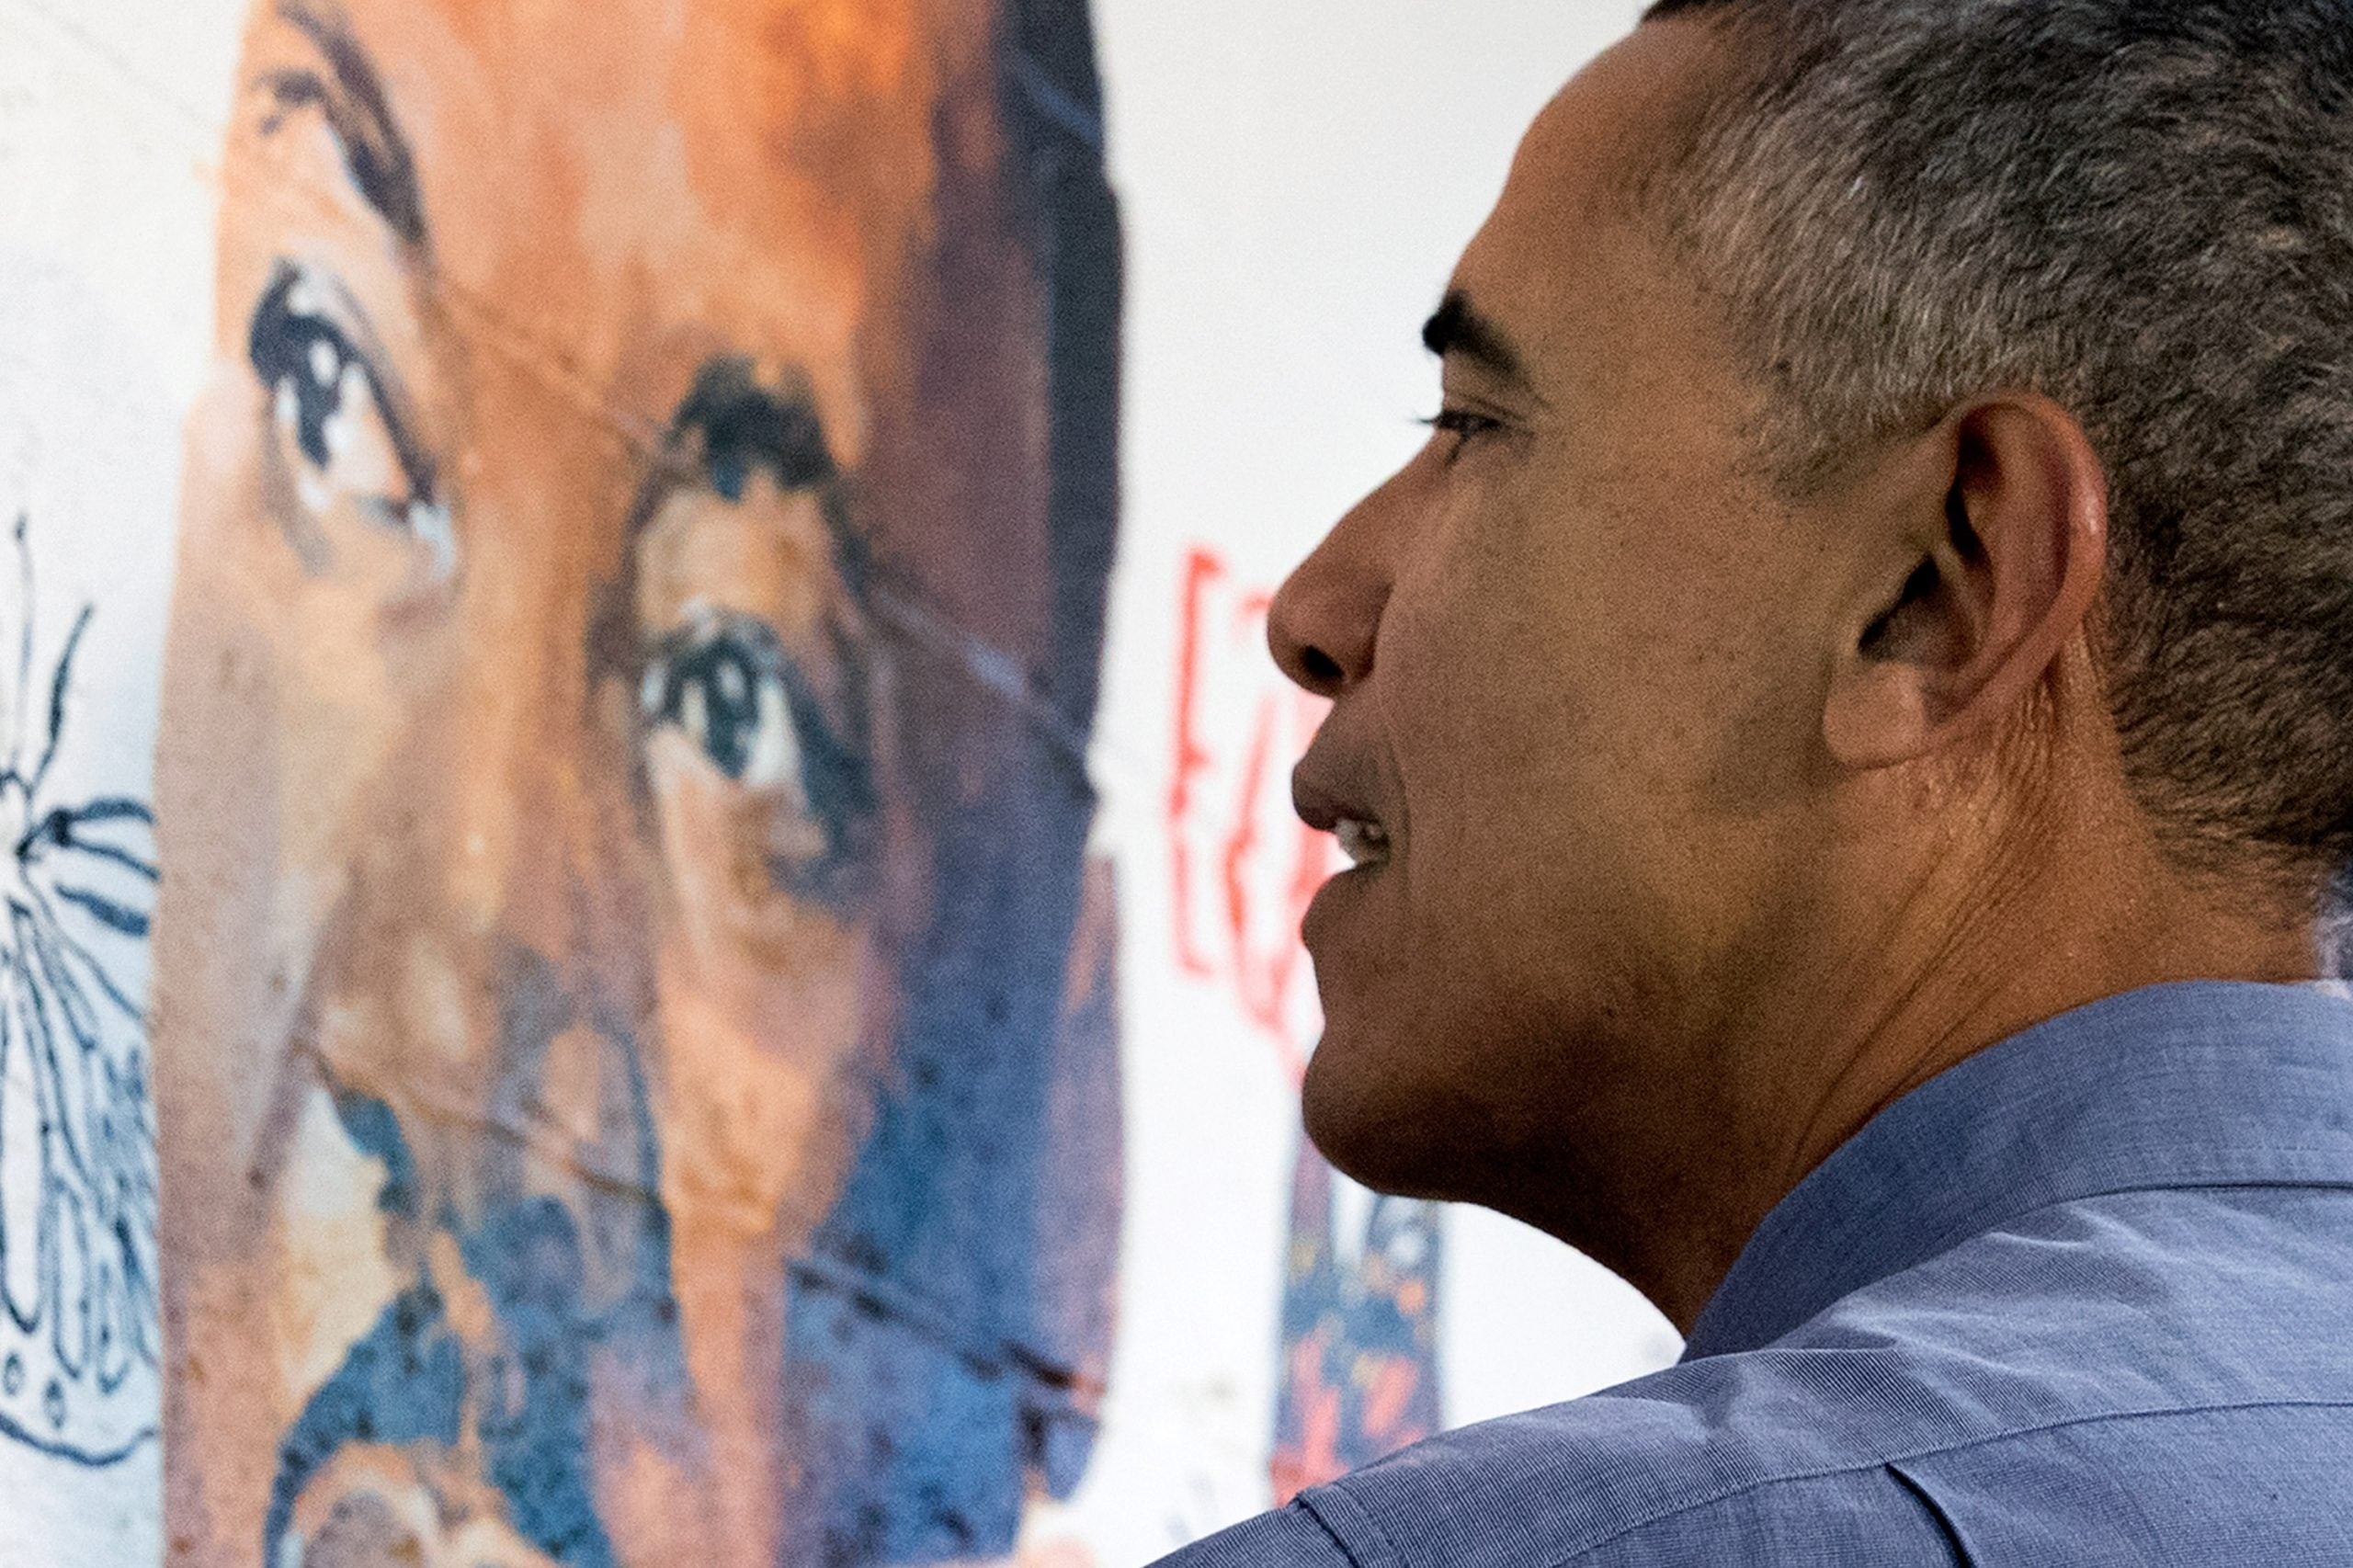 President Barack Obama helps paint a mural depicting Martin Luther King Jr., at the Jobs Have Priority Naylor Road Family Shelter